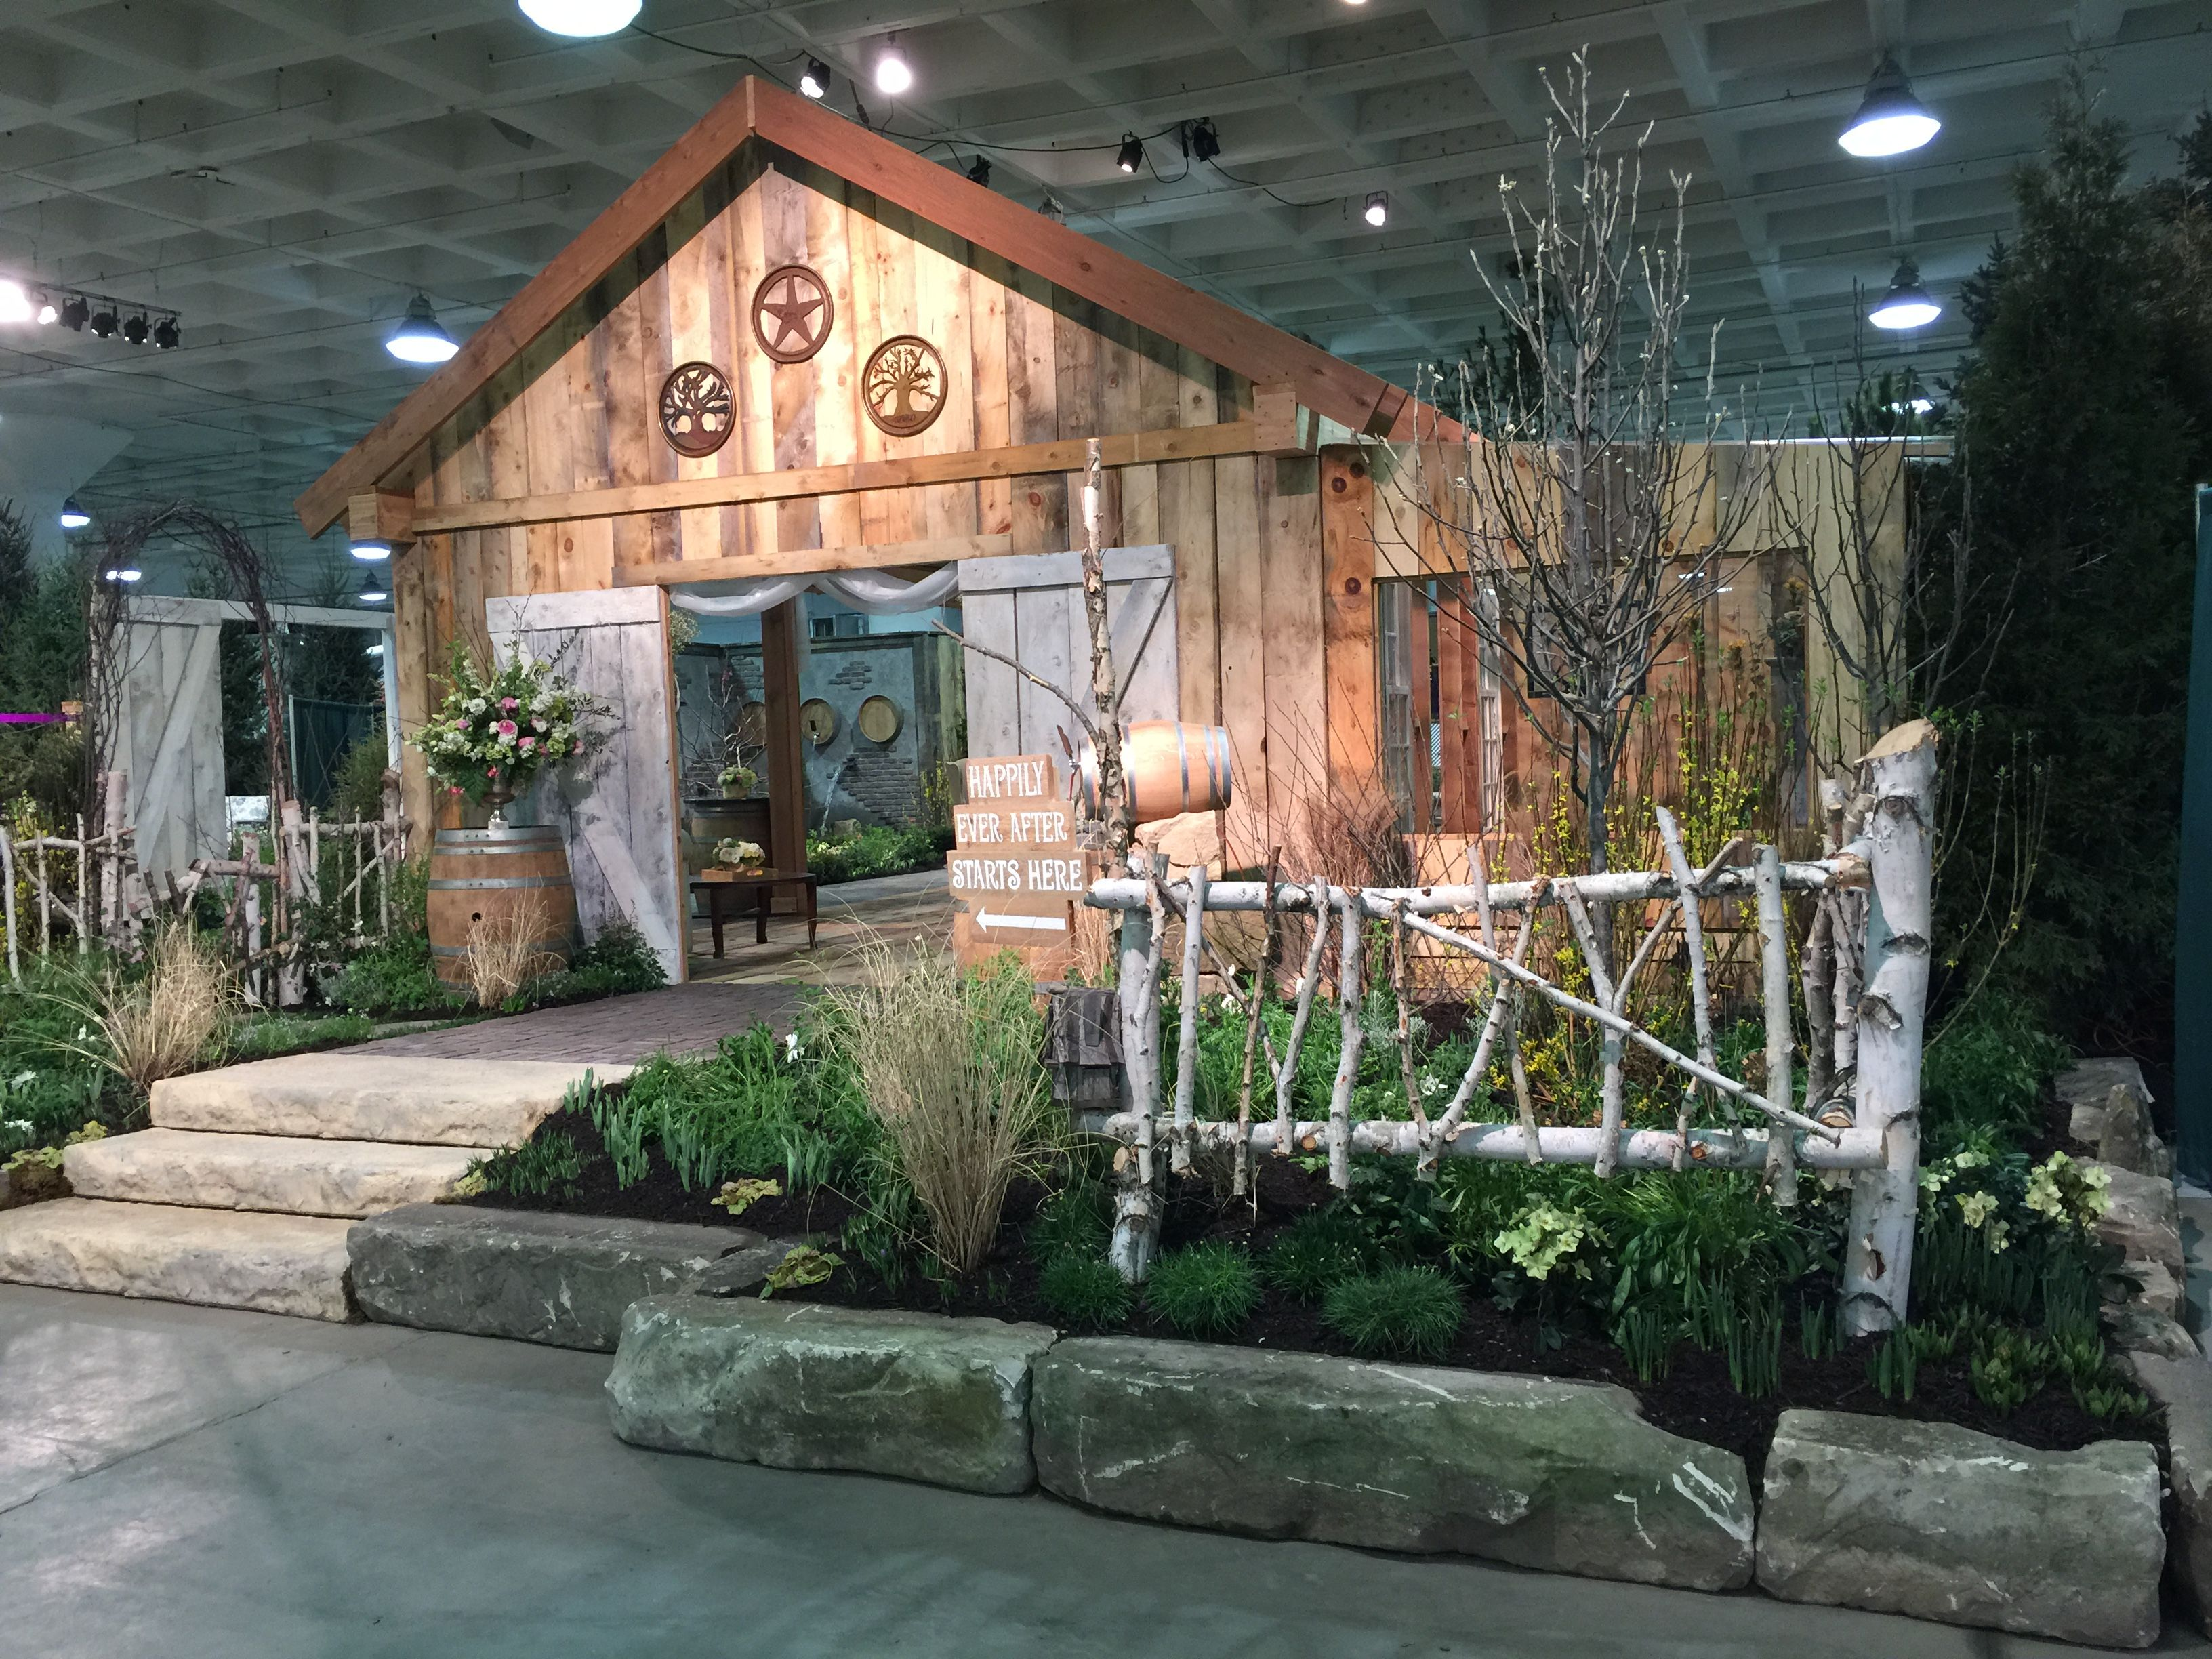 Lovely Cleveland 2016 Home And Garden Show Just Started! Here Is A Spring Flower  Vineyard Wedding